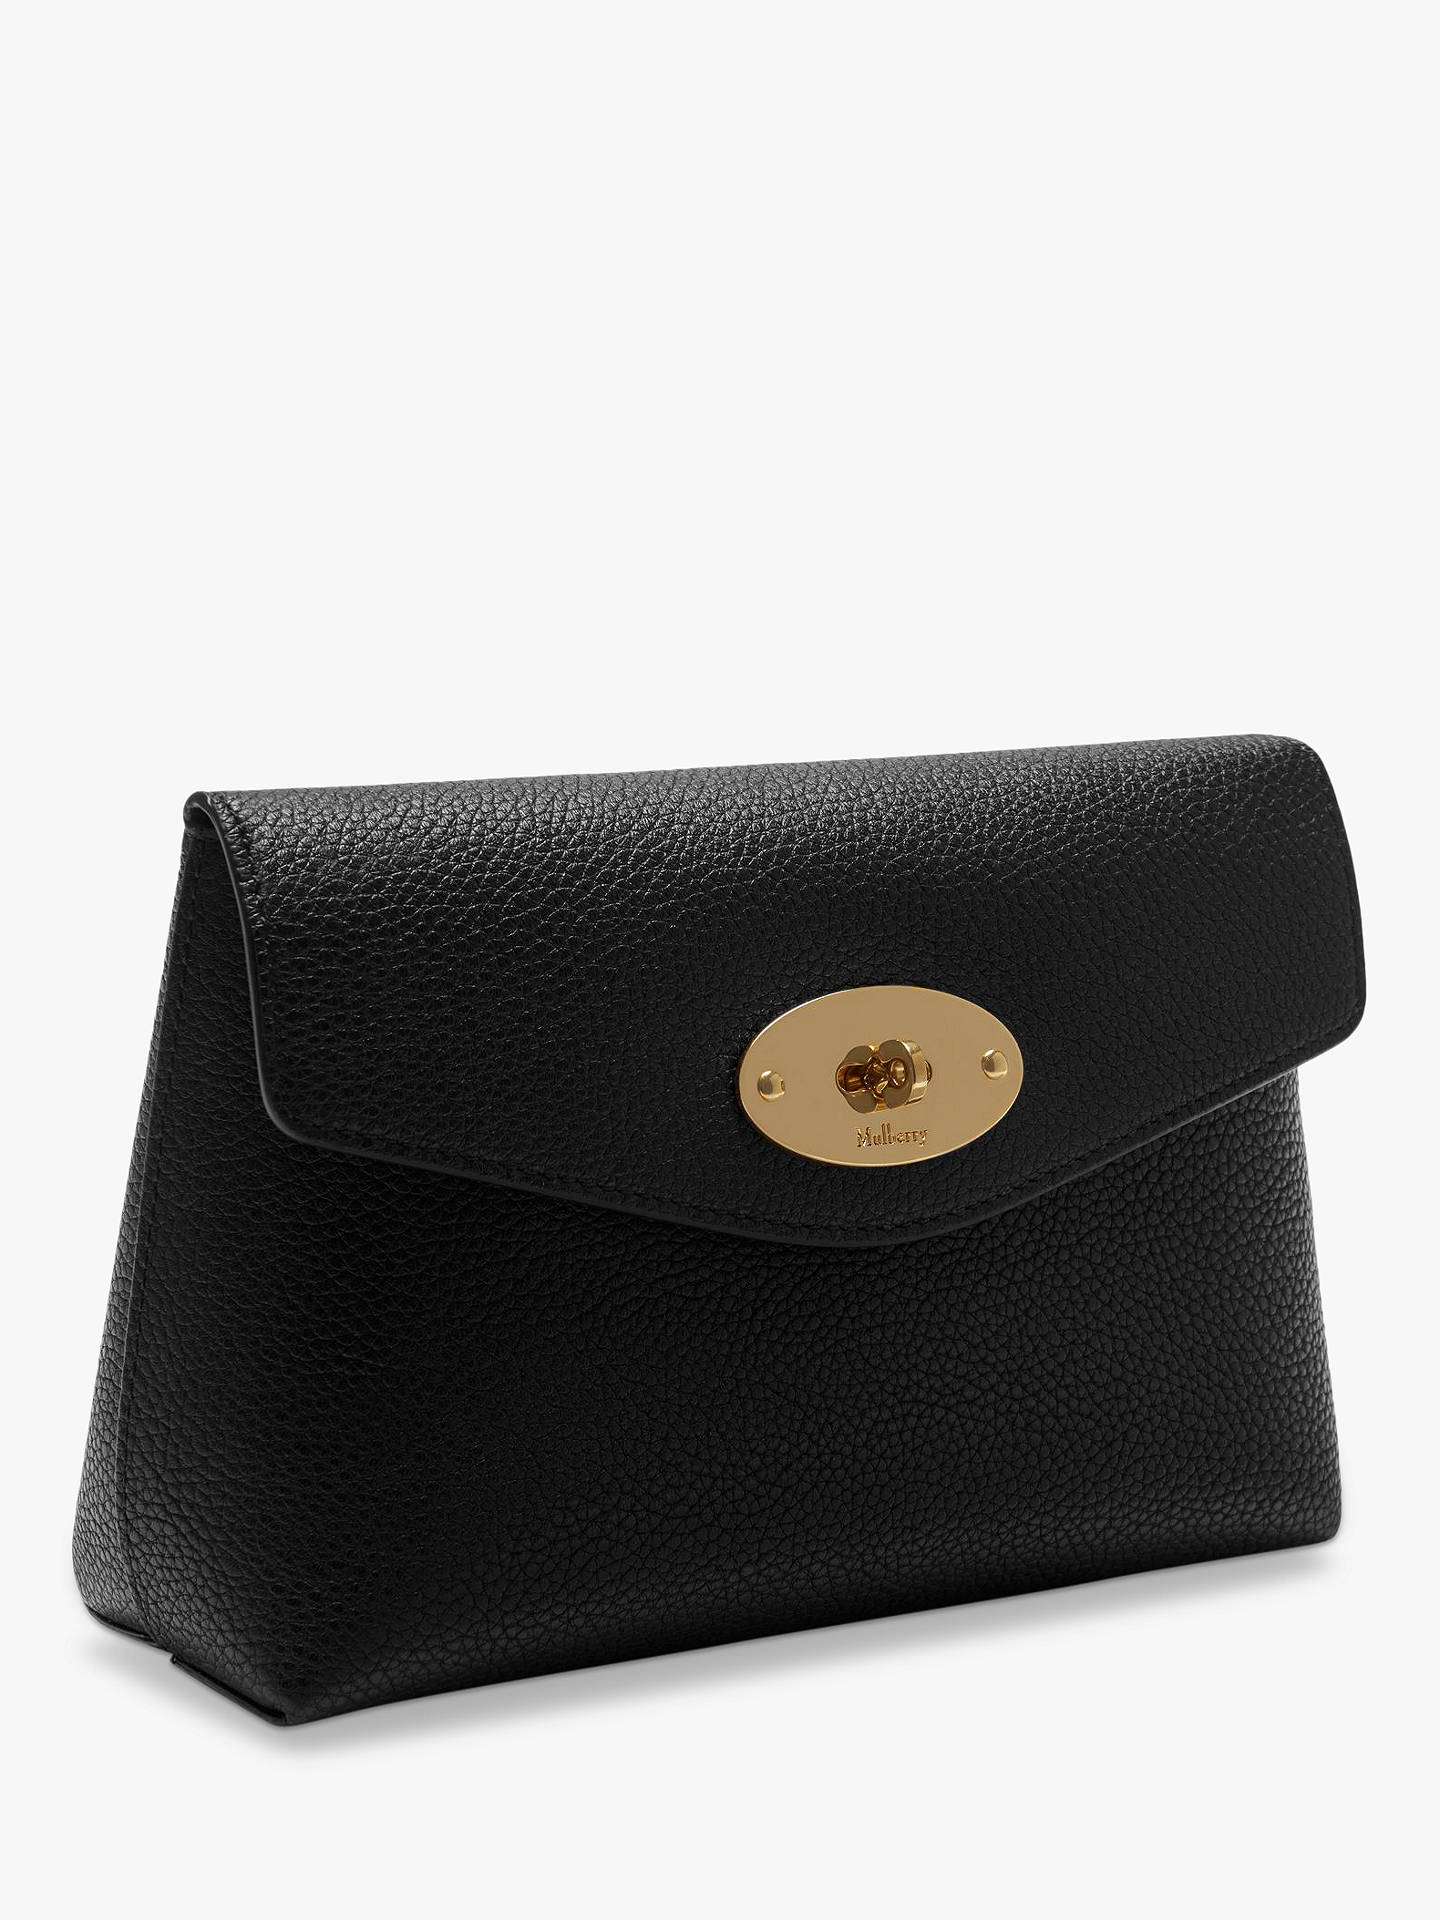 4cb60ee6a044 Mulberry Darley Classic Grain Leather Small Cosmetic Pouch, Black